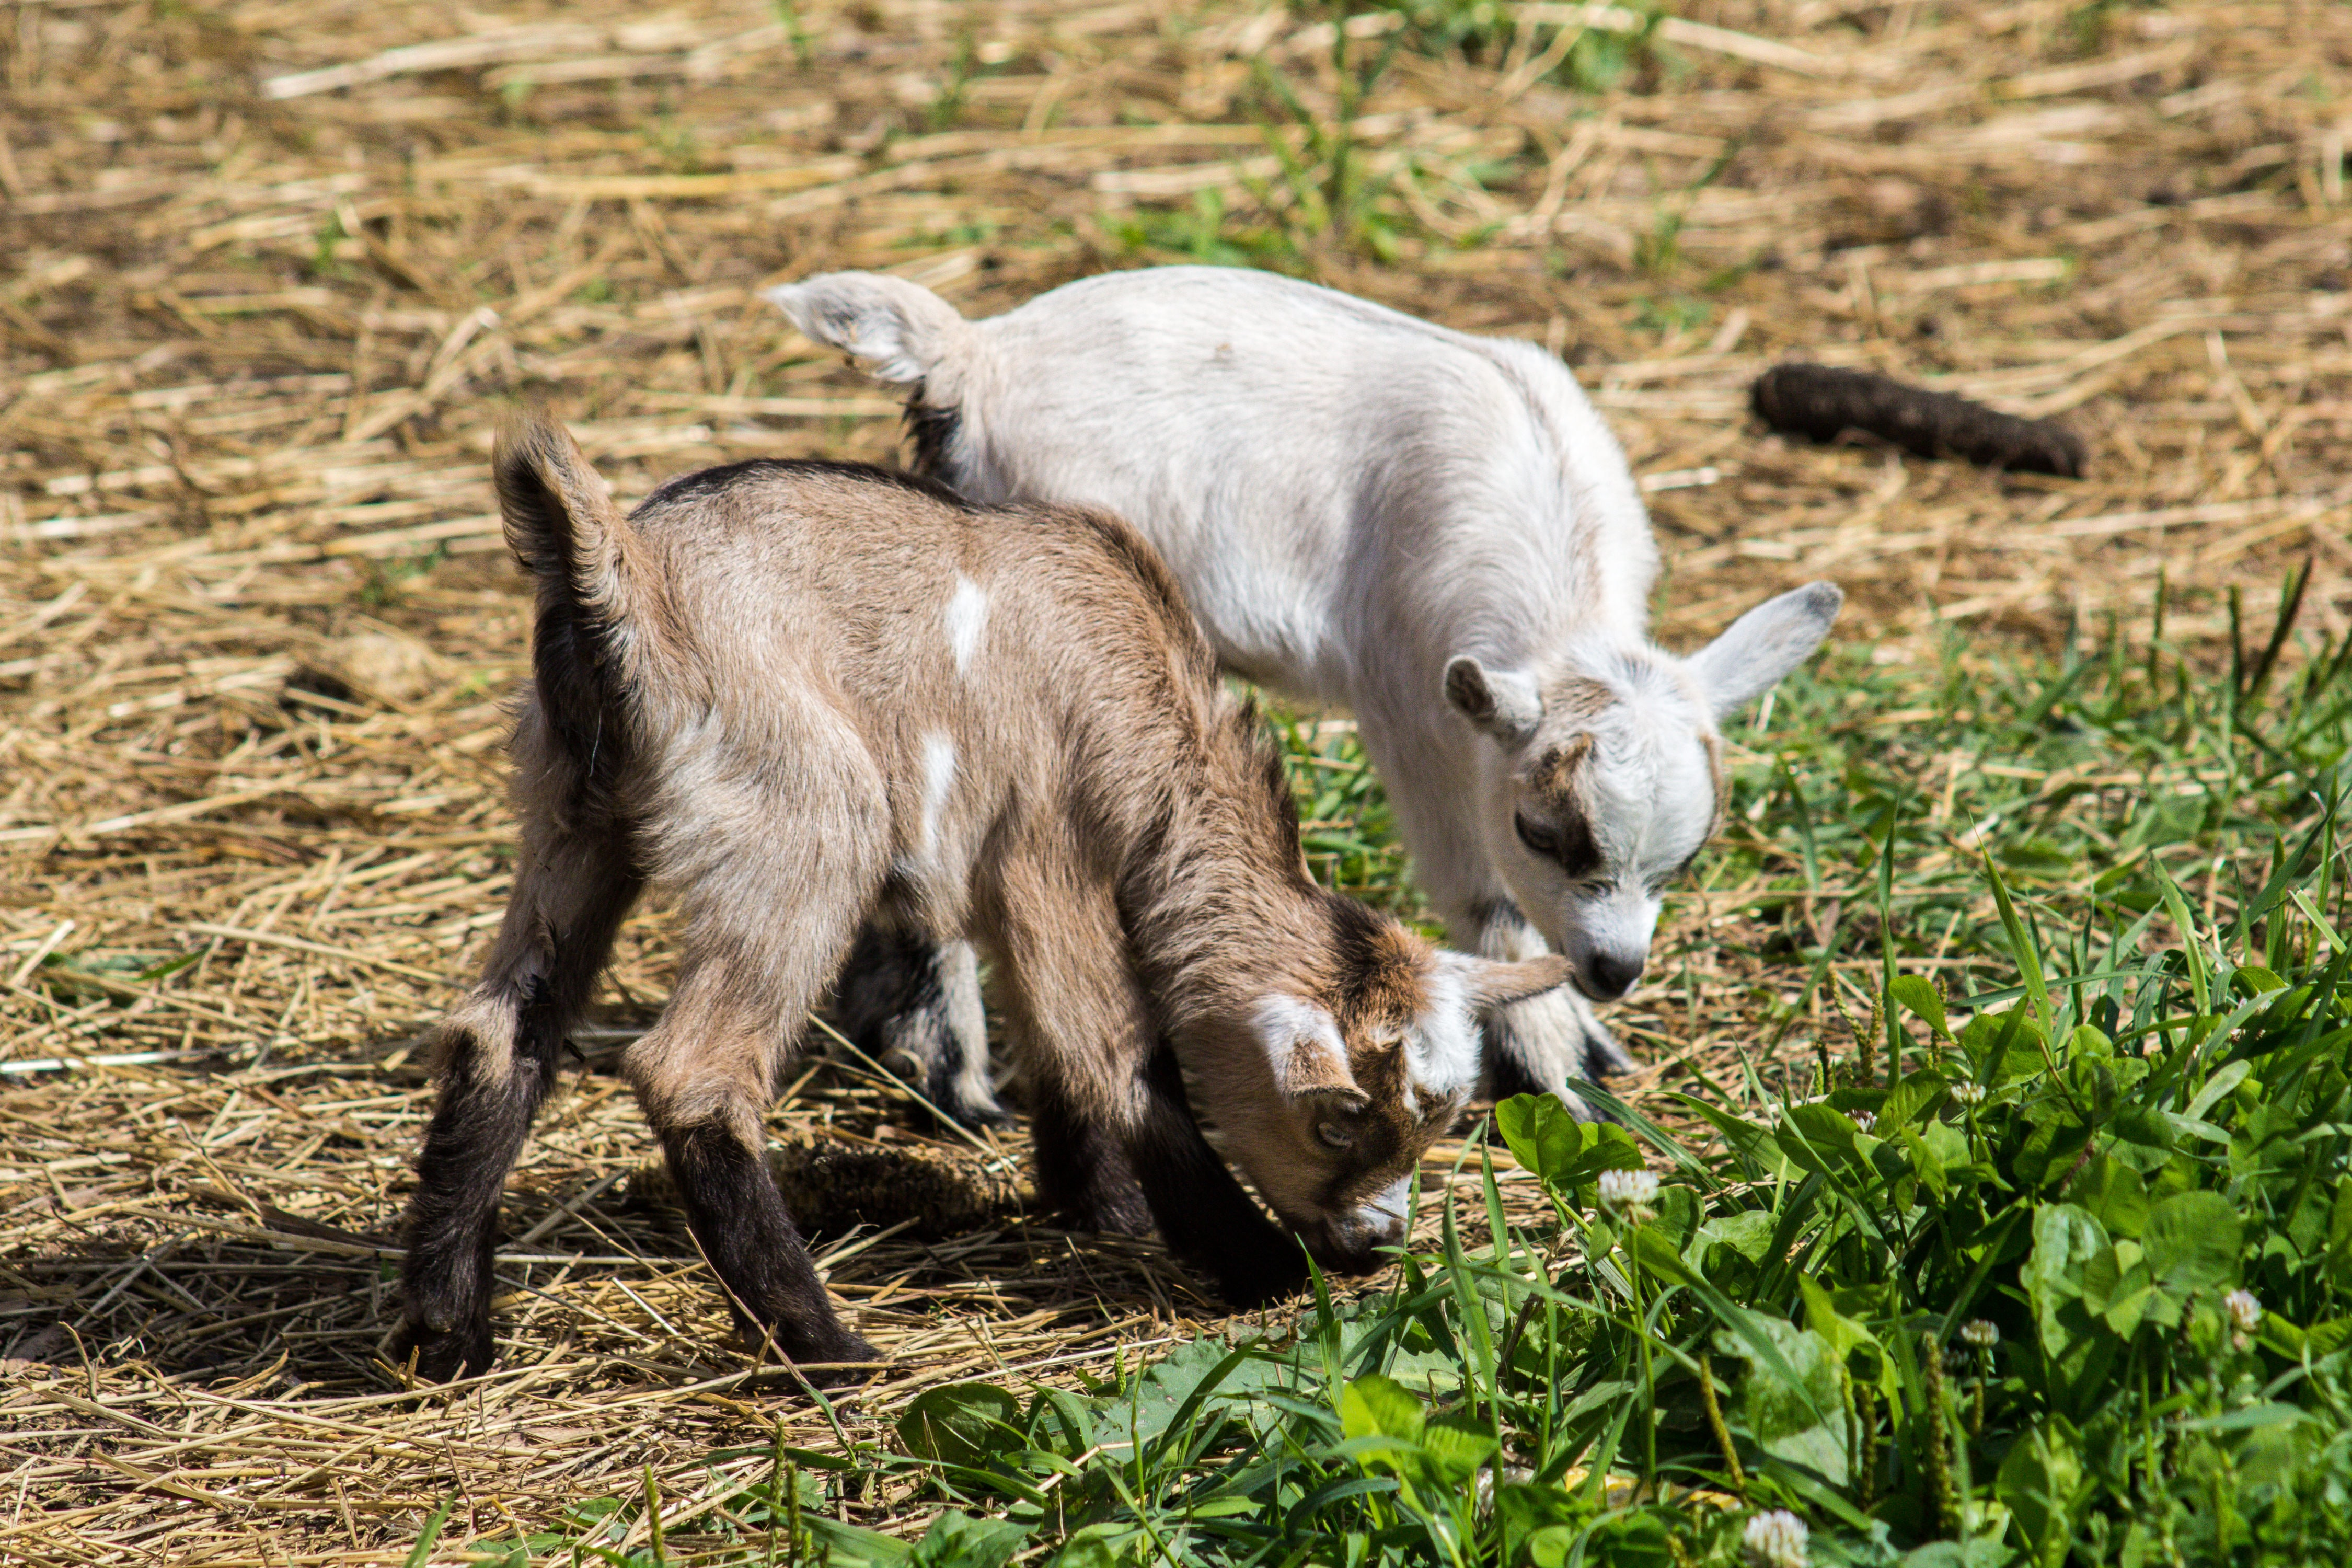 two white and brown goat kids eating grass